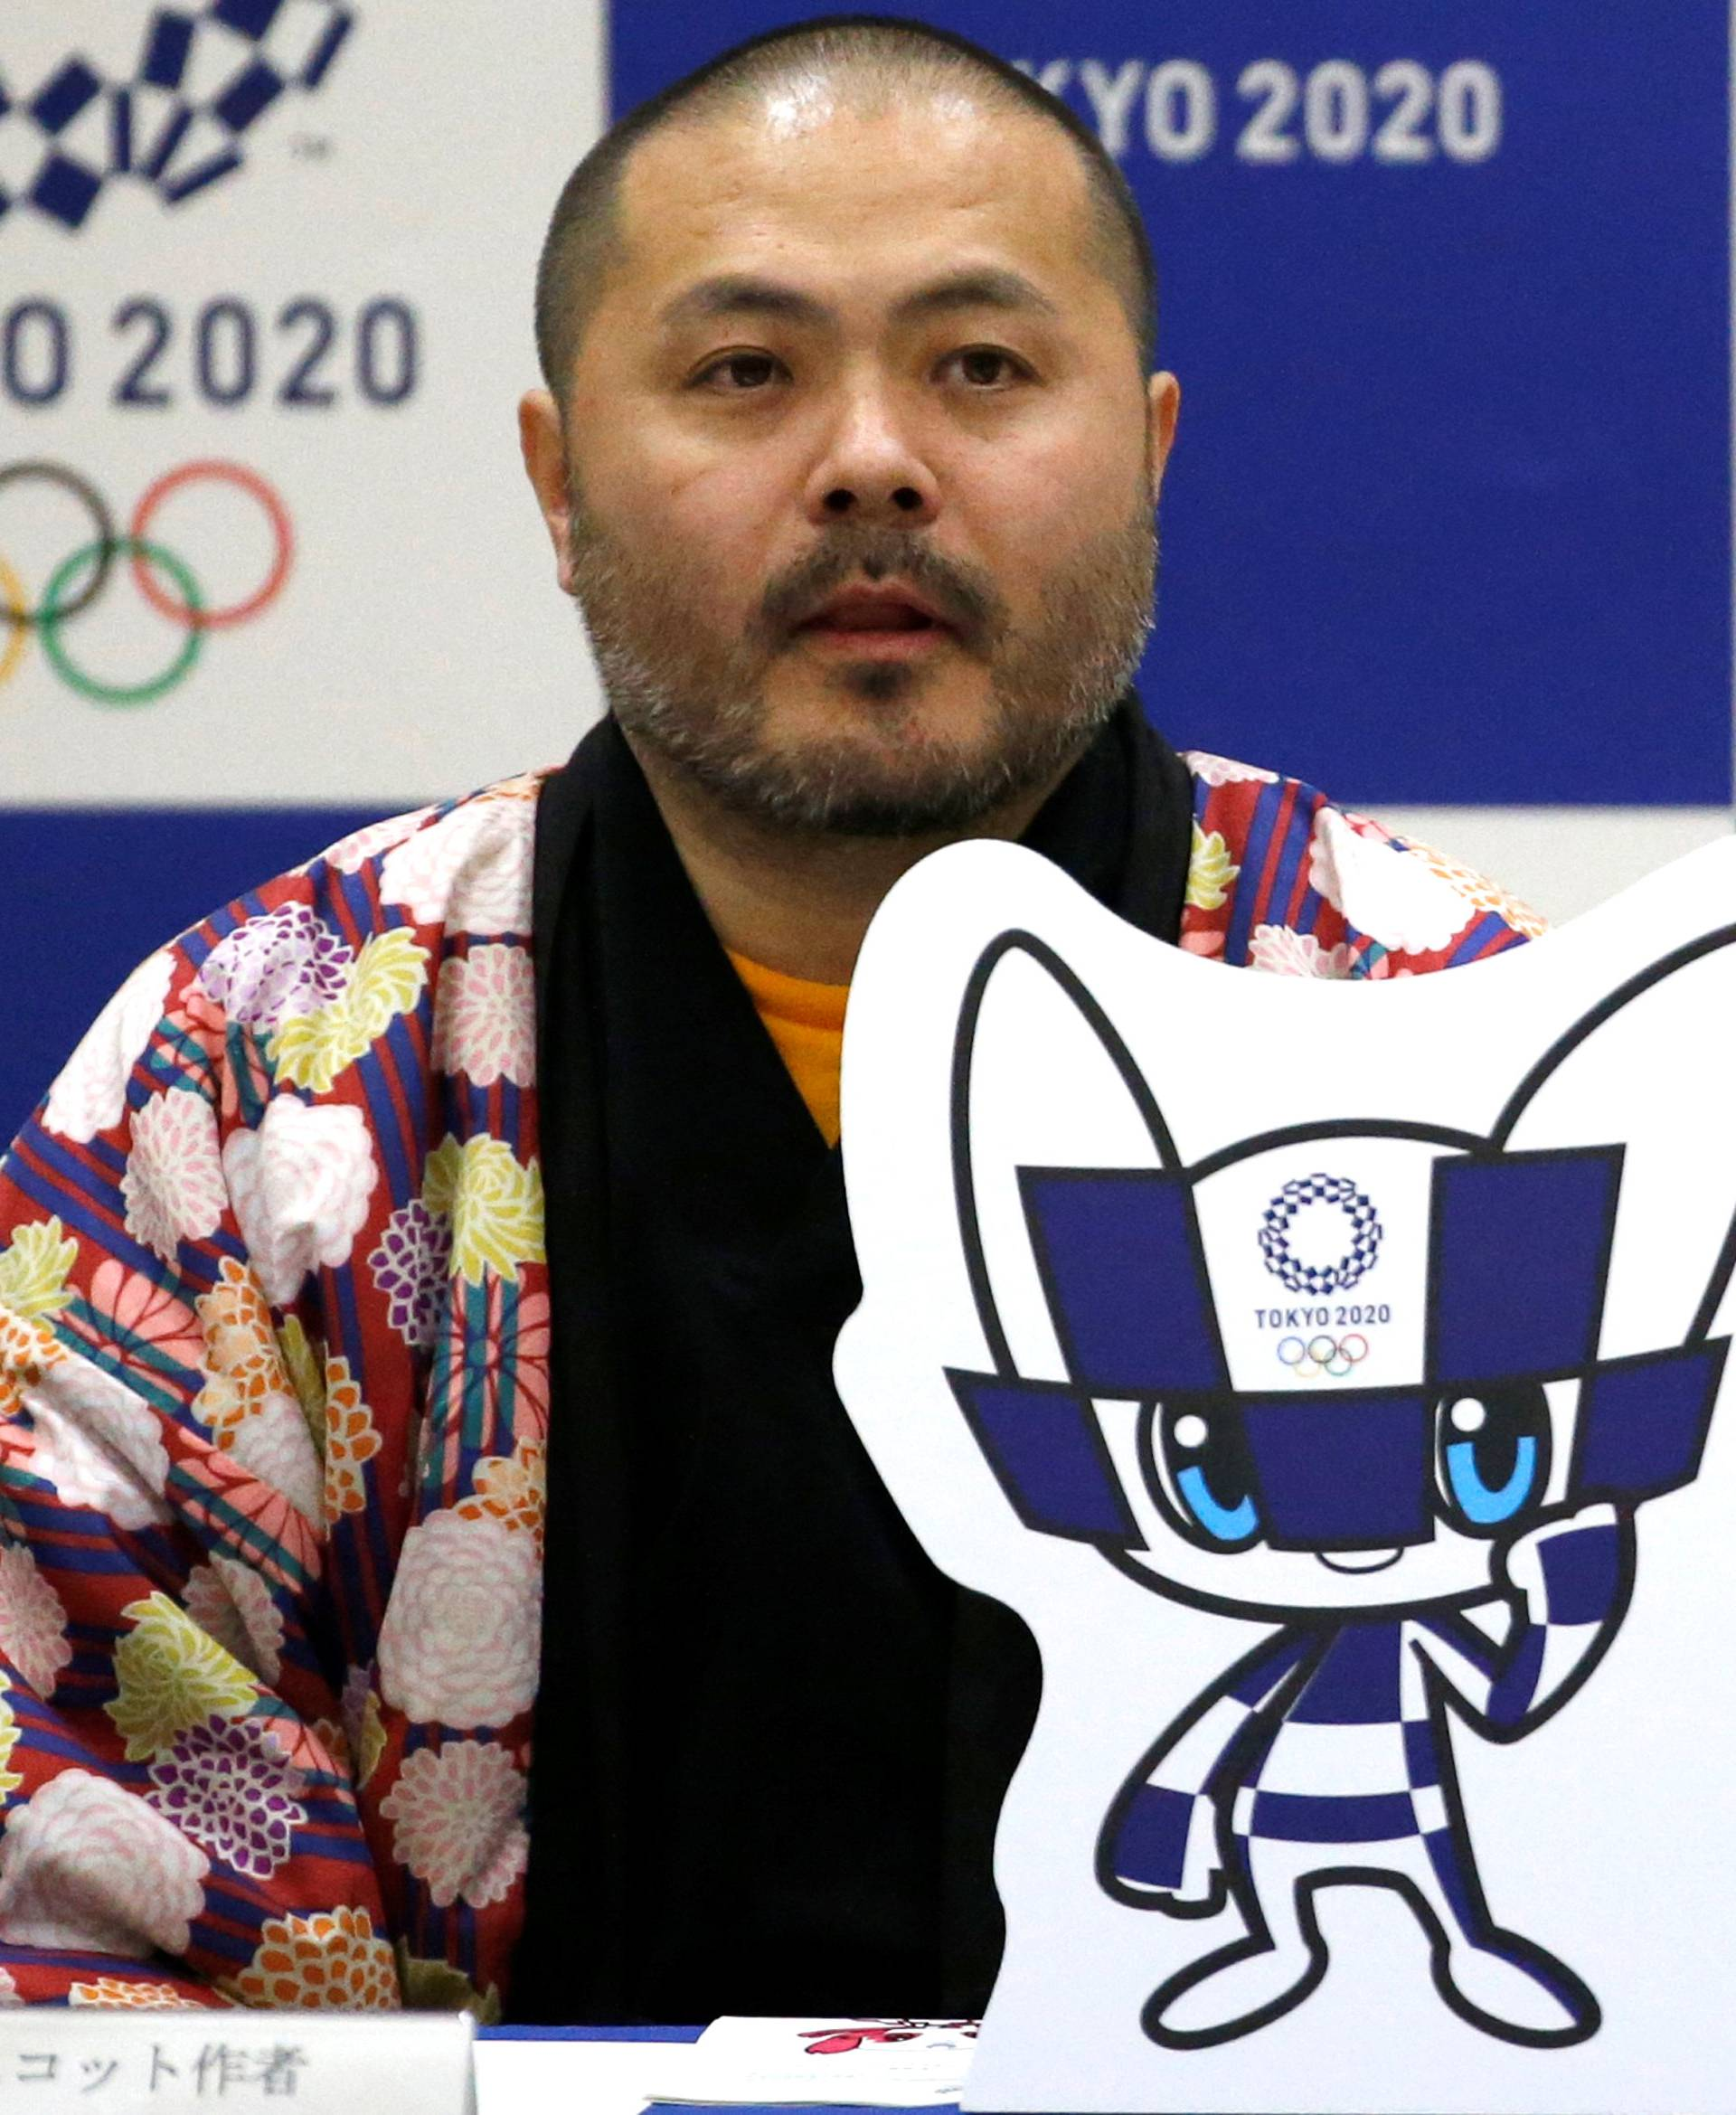 The designer of winning mascots Ryo Taniguchi attends a news conference after Tokyo Olympics organizers unveiled the mascots for the Tokyo 2020 Olympics and Paralympics in Tokyo